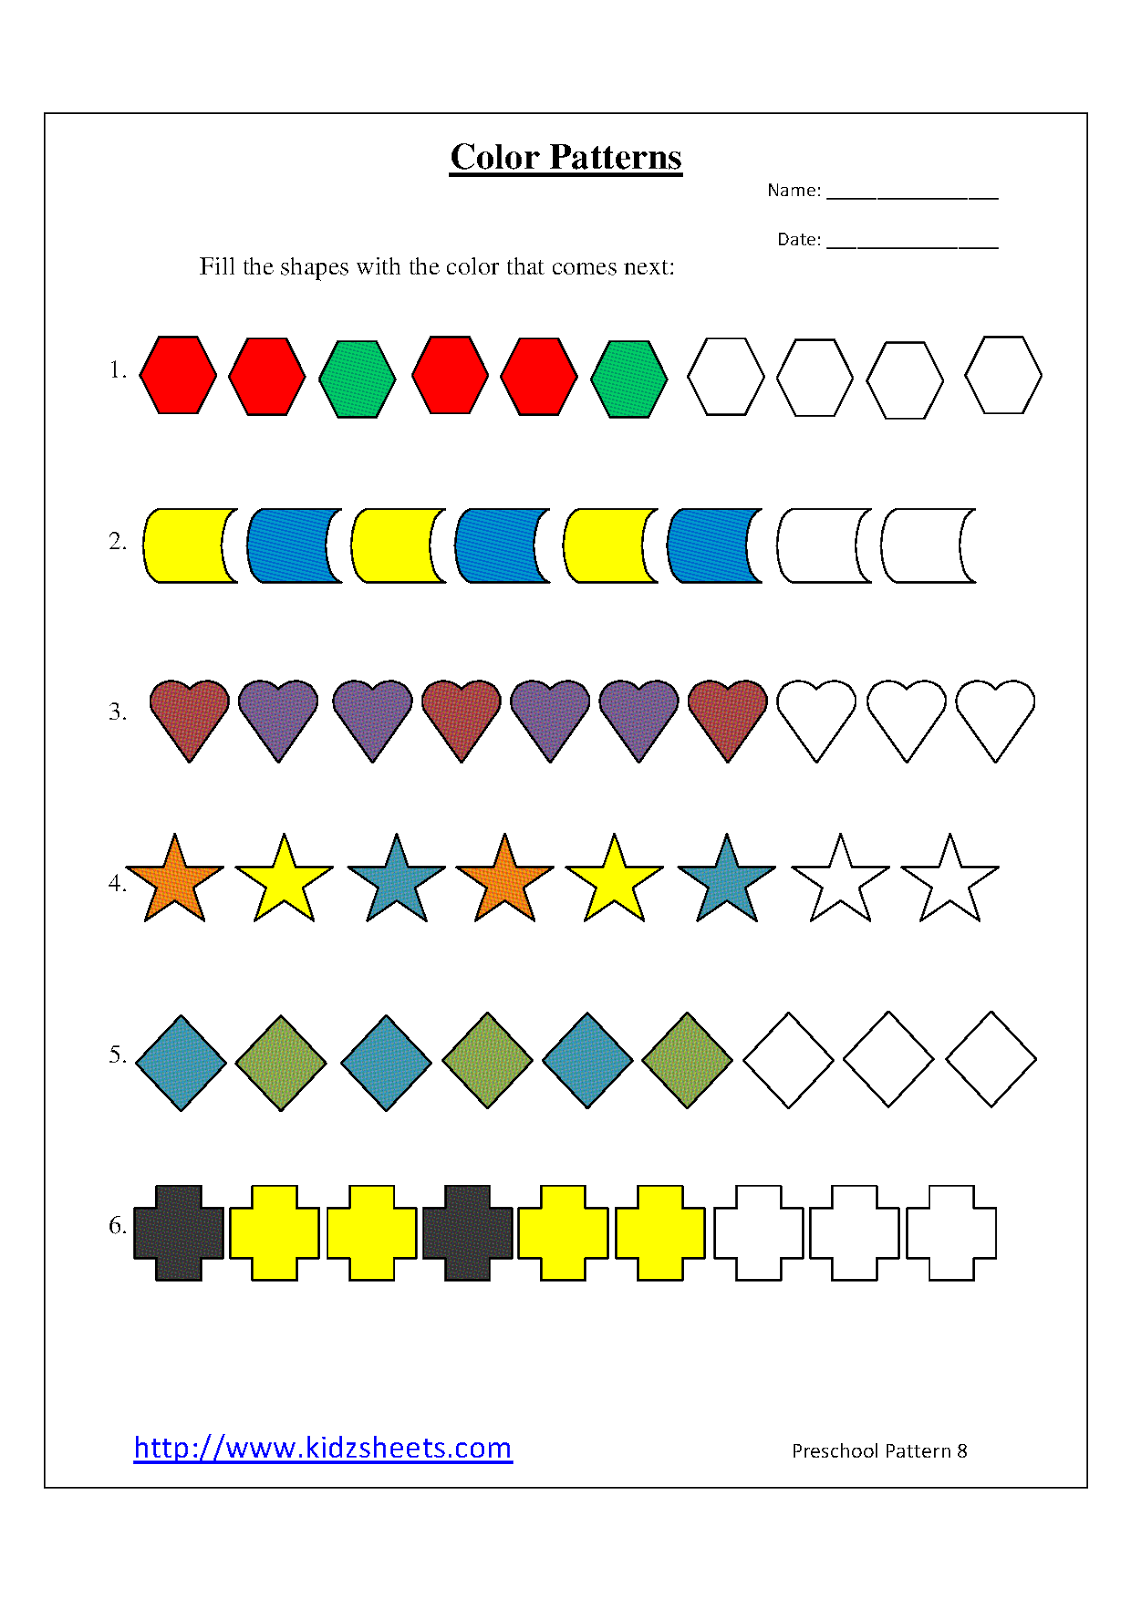 Worksheets Preschool Pattern Worksheets kidz worksheets preschool color patterns worksheet8 patterns